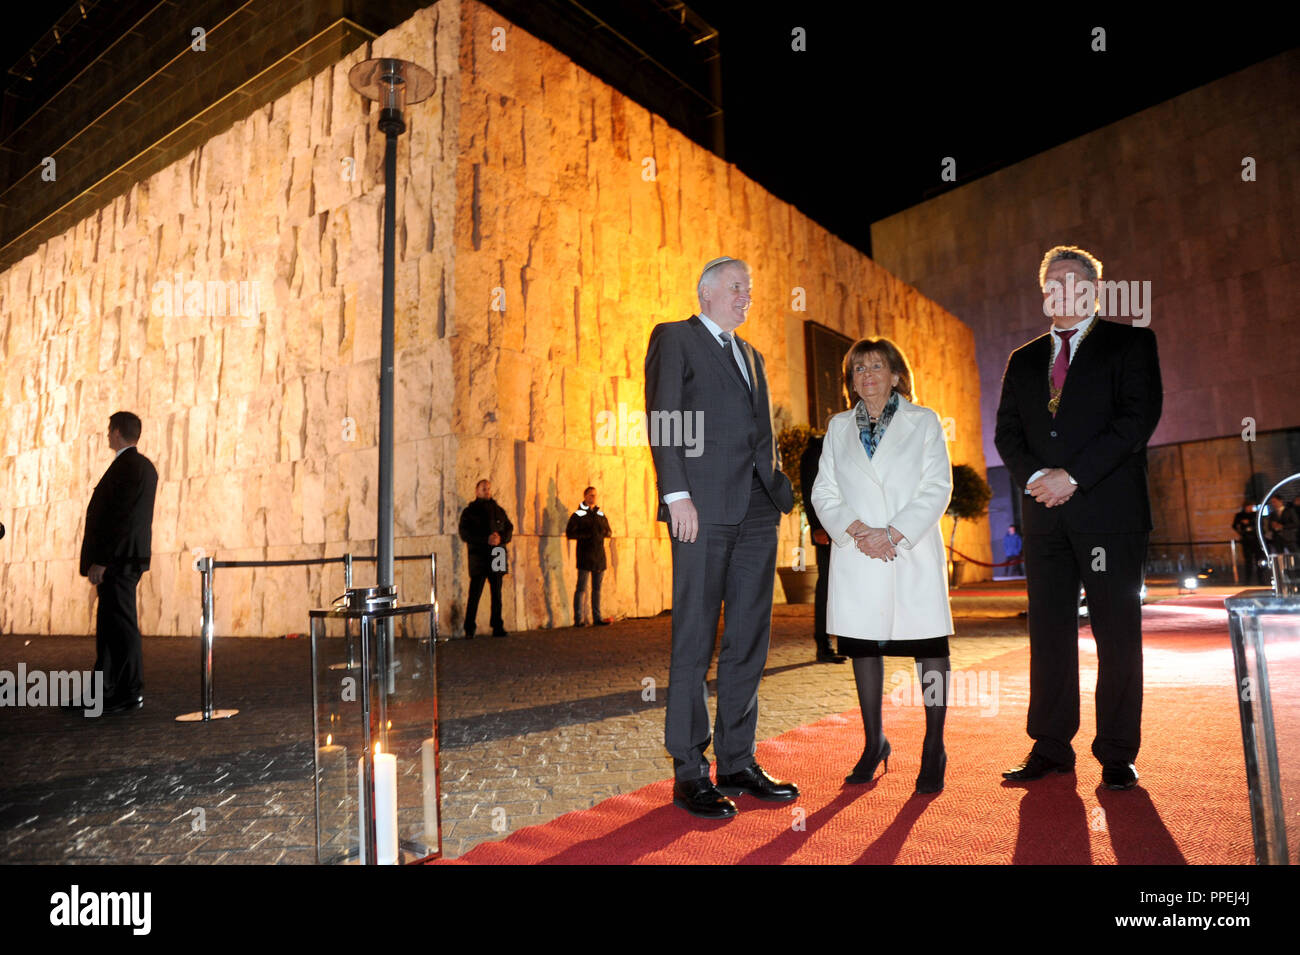 From left to right: Bavarian Prime Minister Horst Seehofer (CSU), Charlotte Knobloch, President of the Jewish Community of Israel, and Mayor Dieter Reiter (SPD), at the celebration of the 10th anniversary of the Ohel Jakob Synagogue on the St. Jakobs- Platz. - Stock Image